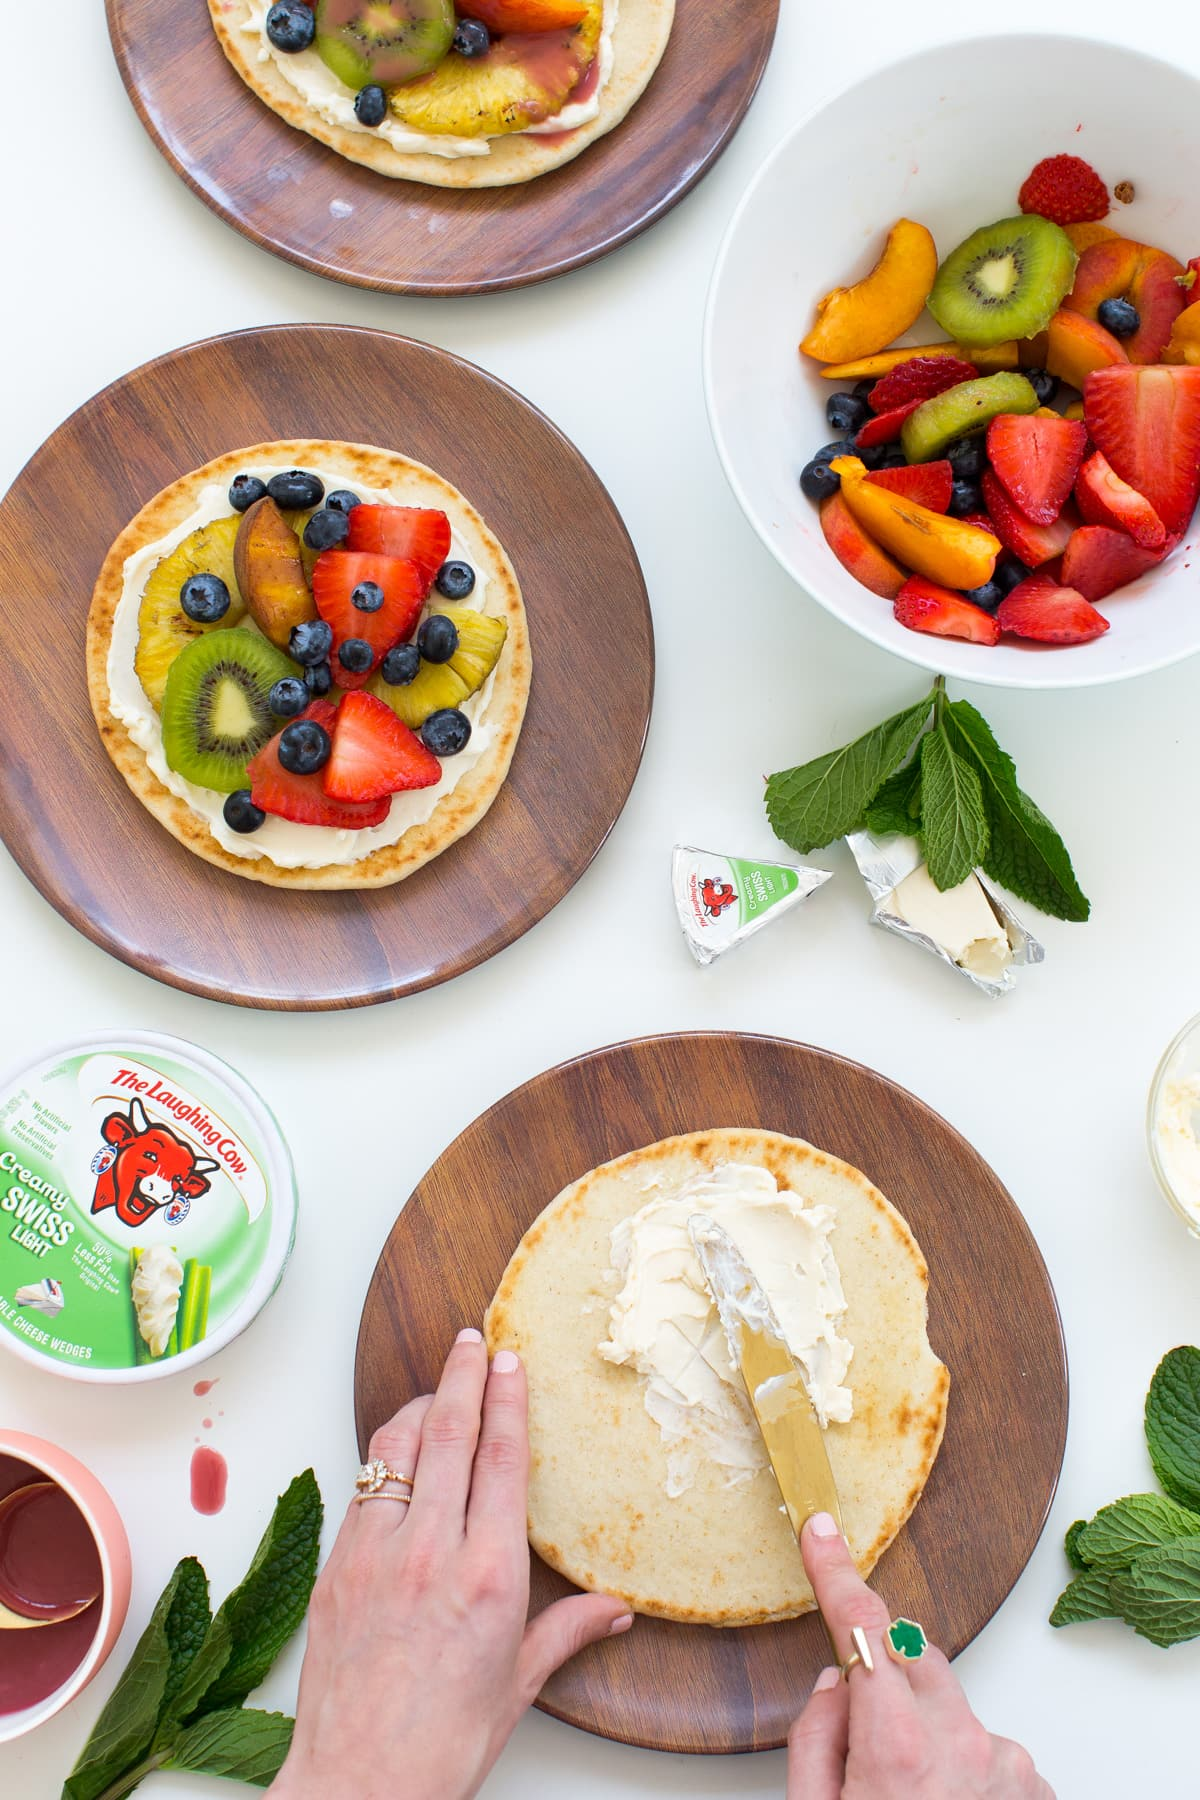 A Summer Grilled Fruit Pizza Recipe by top Houston lifestyle blogger Ashley Rose of Sugar & Cloth